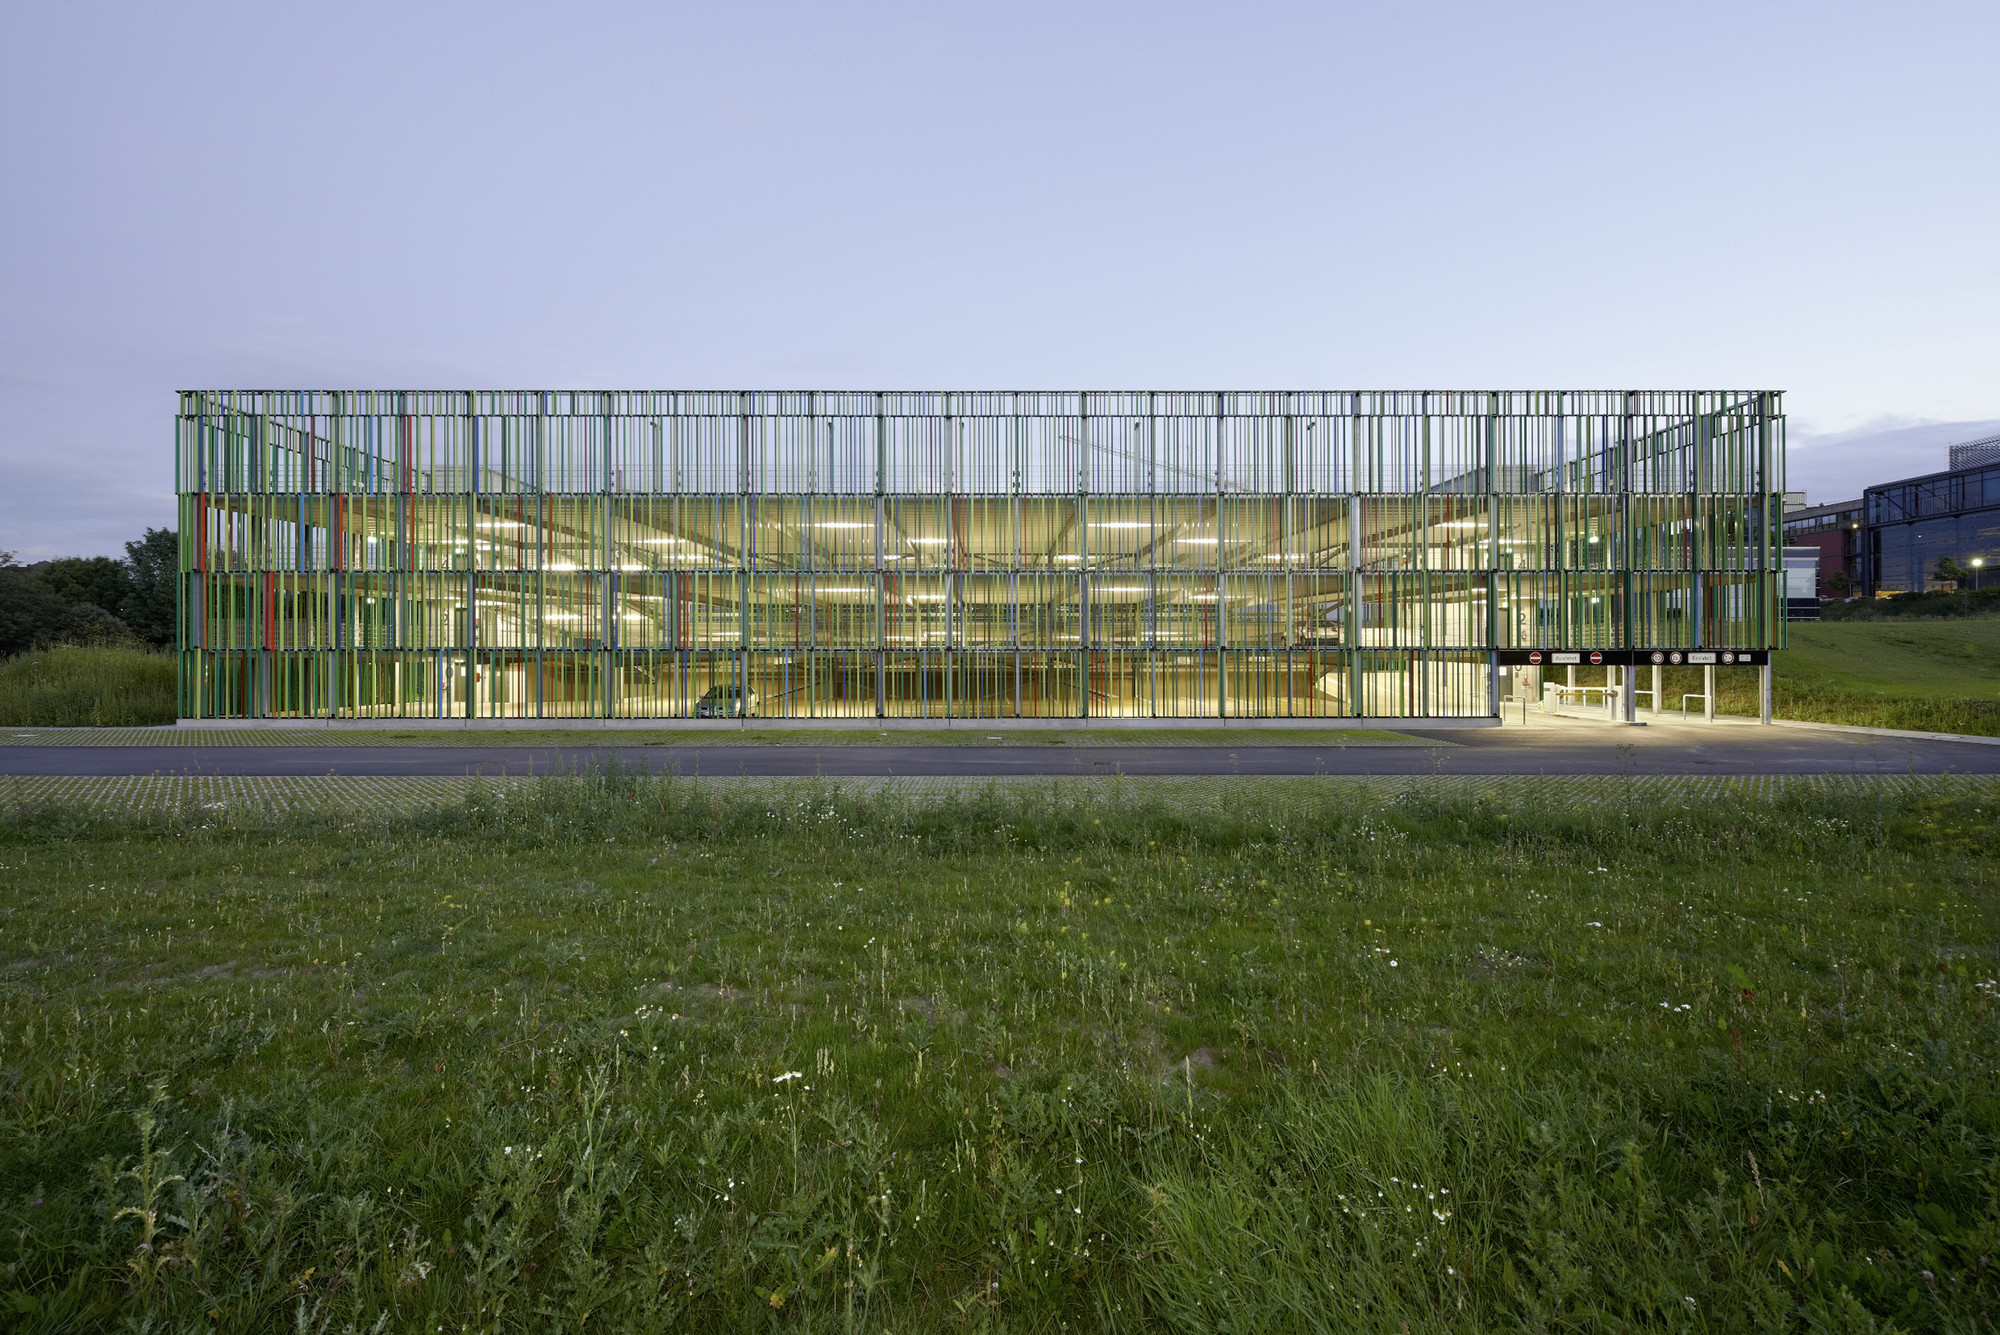 Muliy-storey Car Park / JSWD Architekten, © Thomas Lewandowski